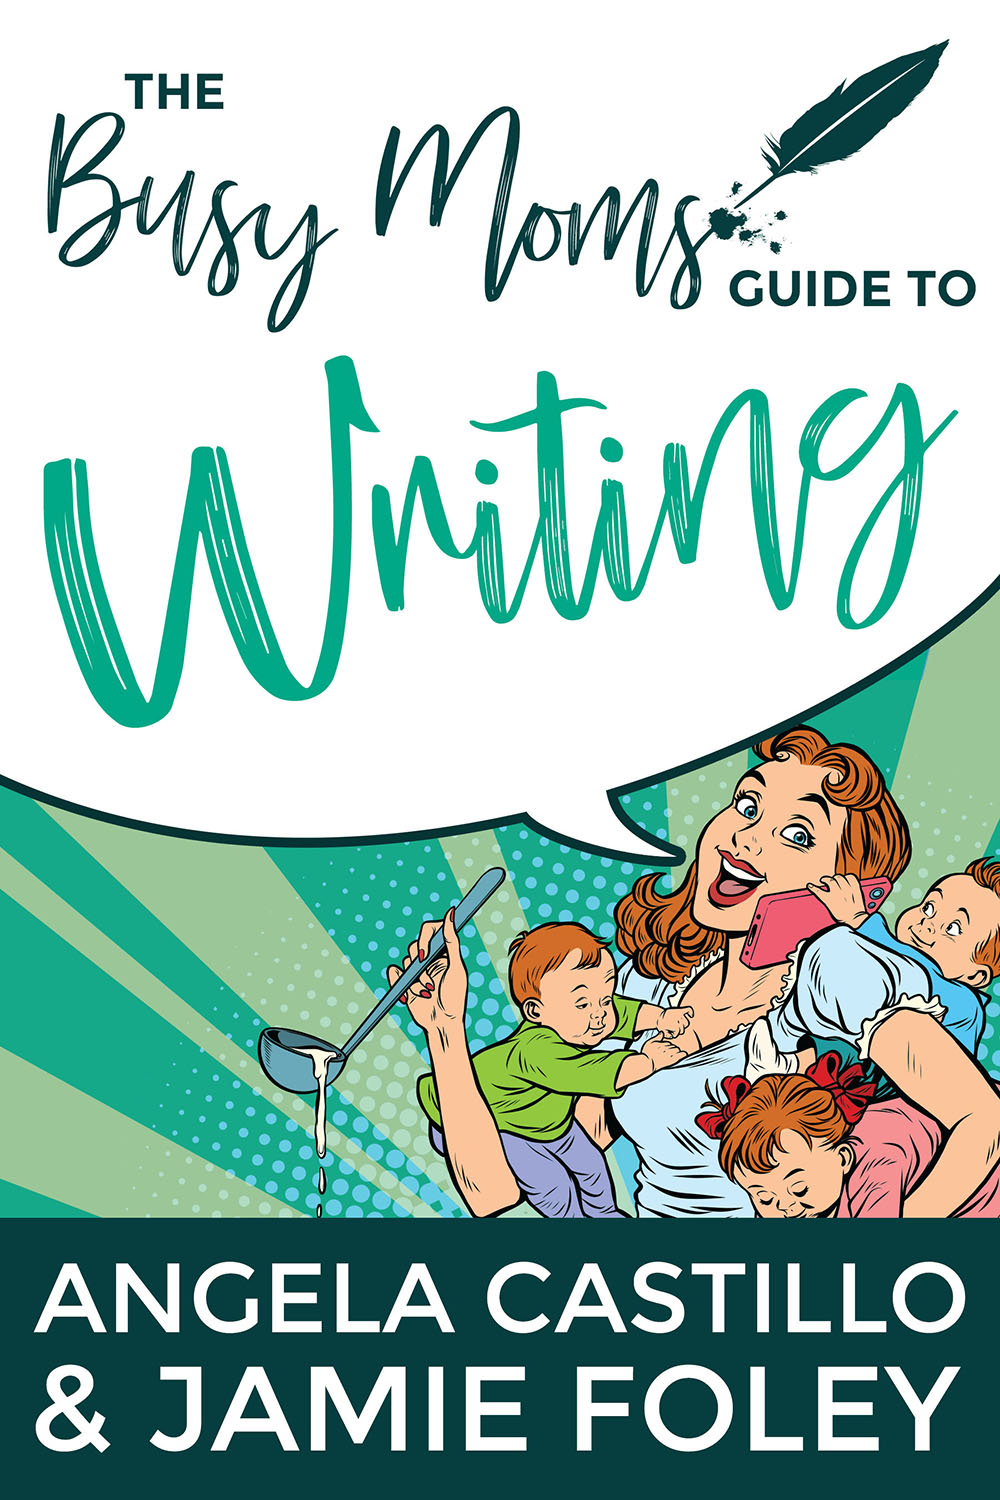 The Busy Mom's Guide to Writing by Angela Castillo and Jamie Foley